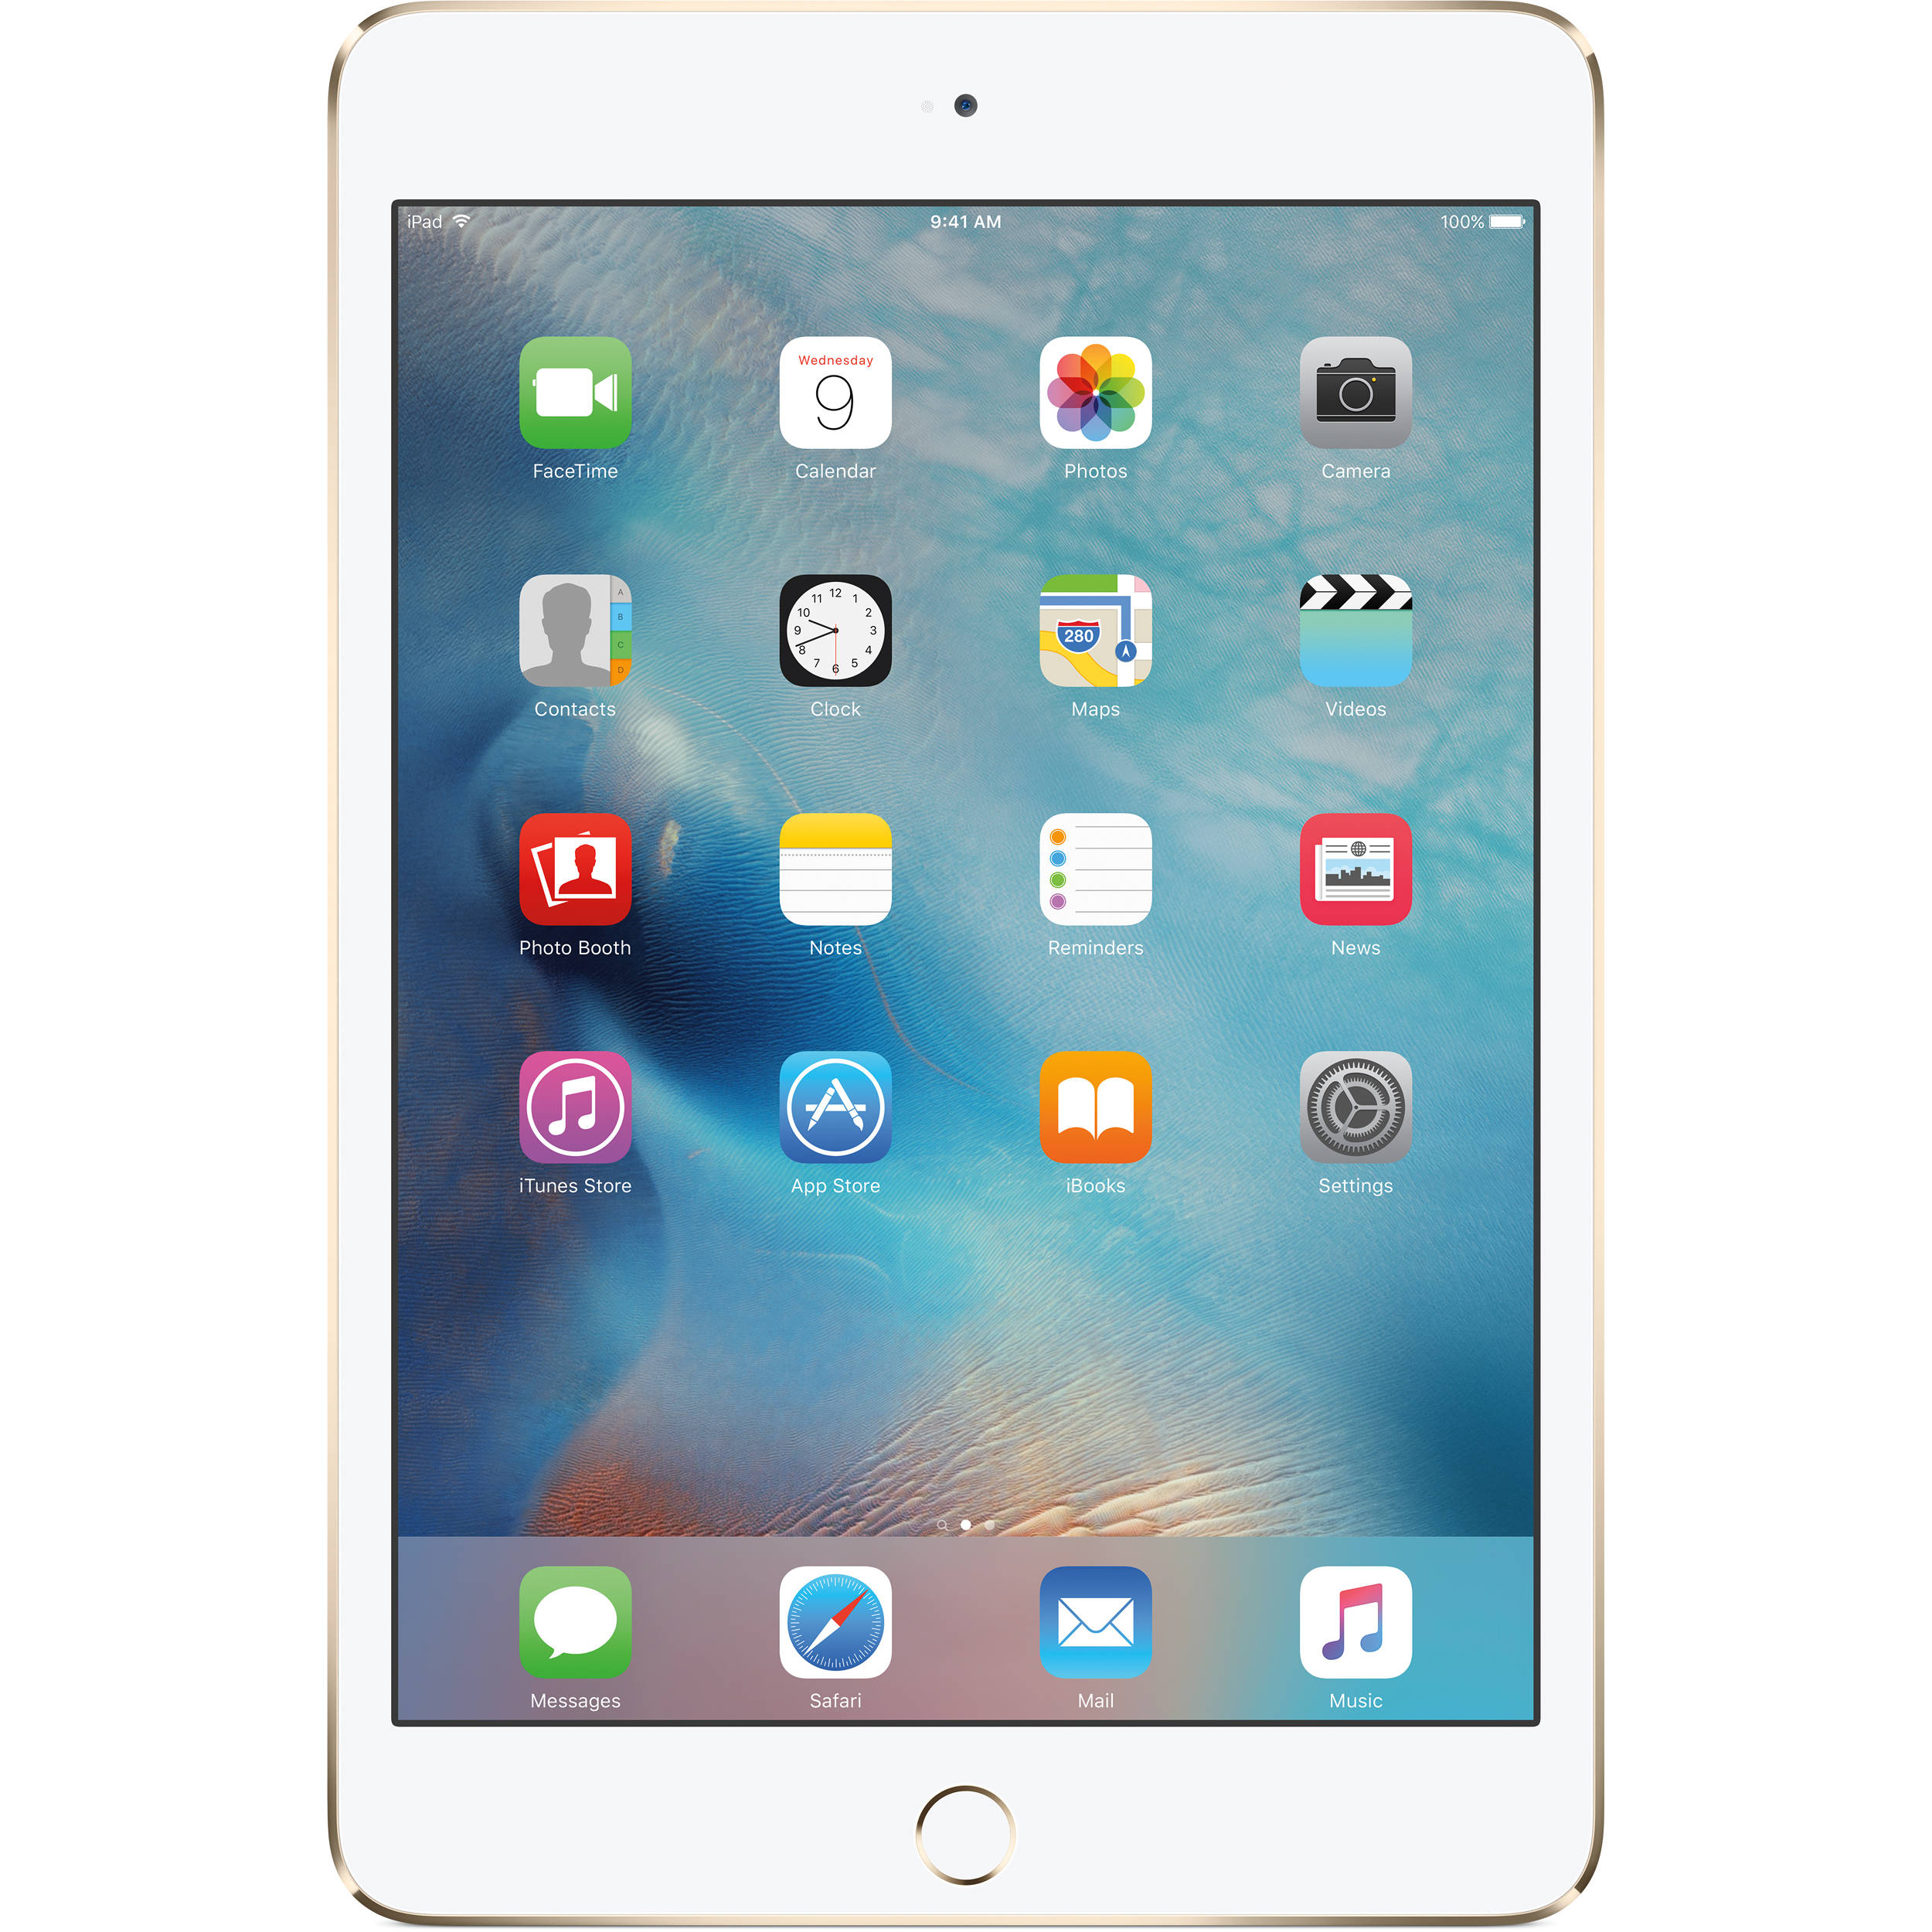 How to clear history on an ipad mini